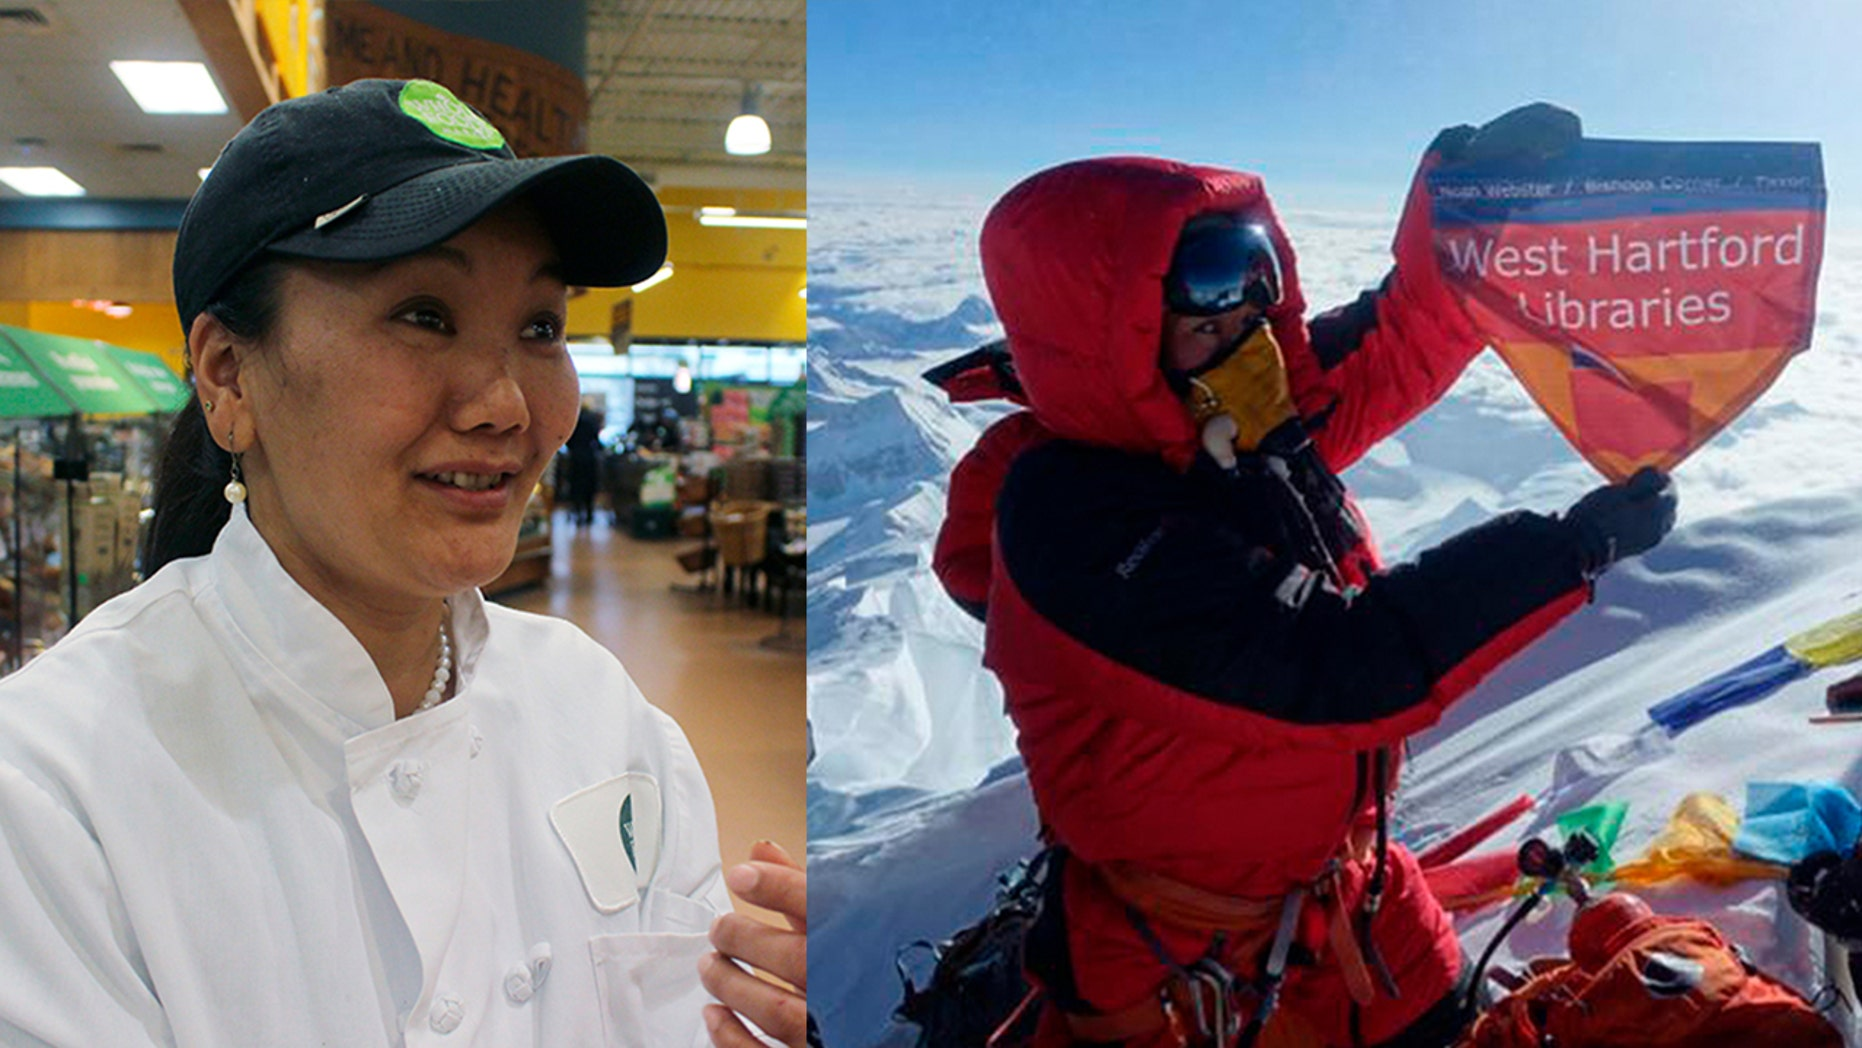 Everest record-holder Lhakpa Sherpa is a dishwasher at Whole Foods Everest record-holder Lhakpa Sherpa is a dishwasher at Whole Foods new photo